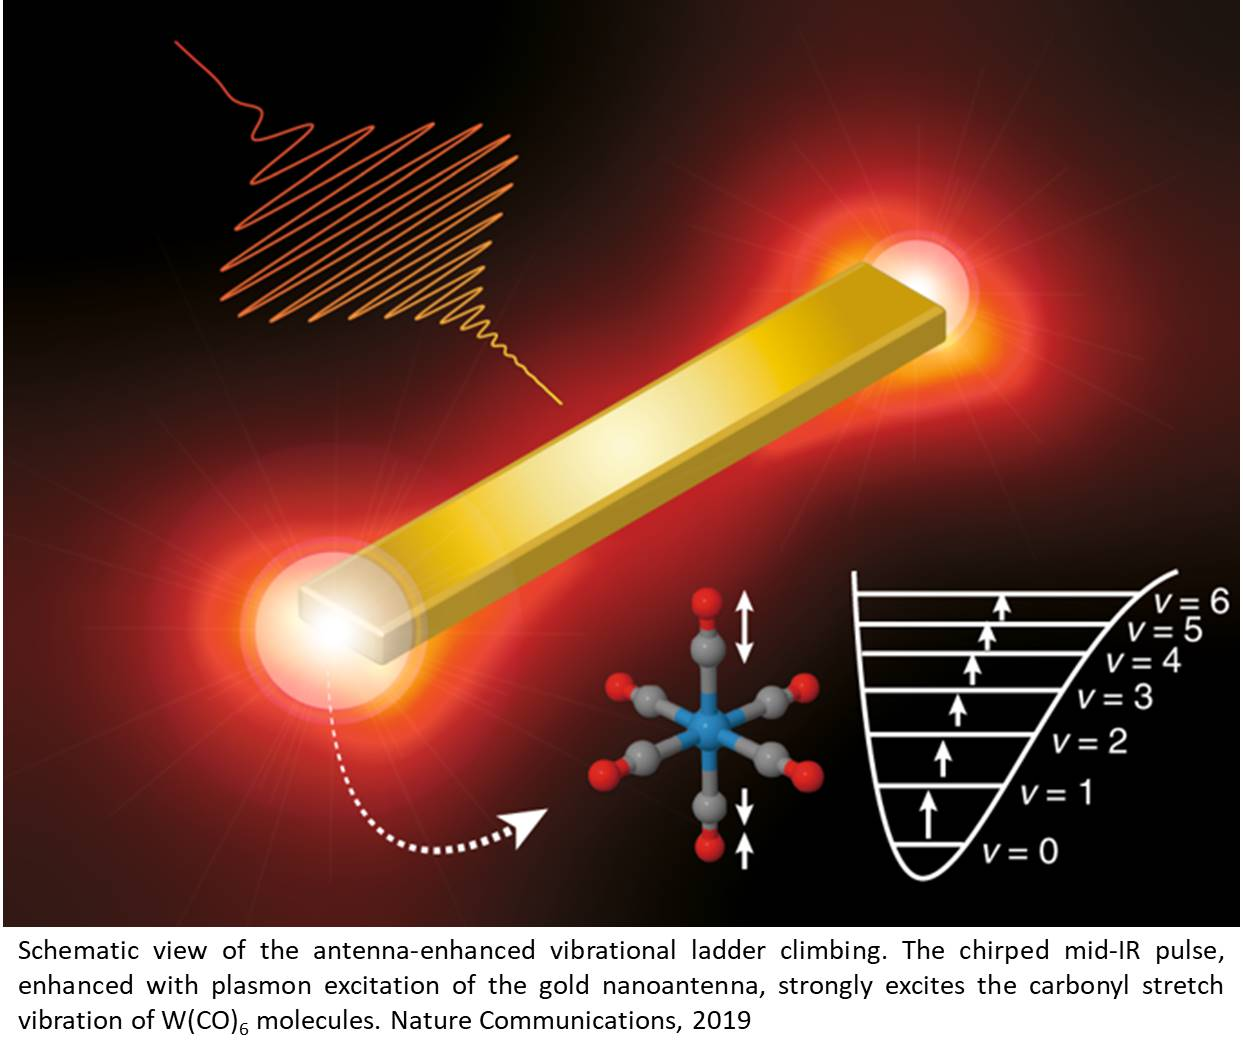 Breaking chemical bonds using antennae and infrared lasers